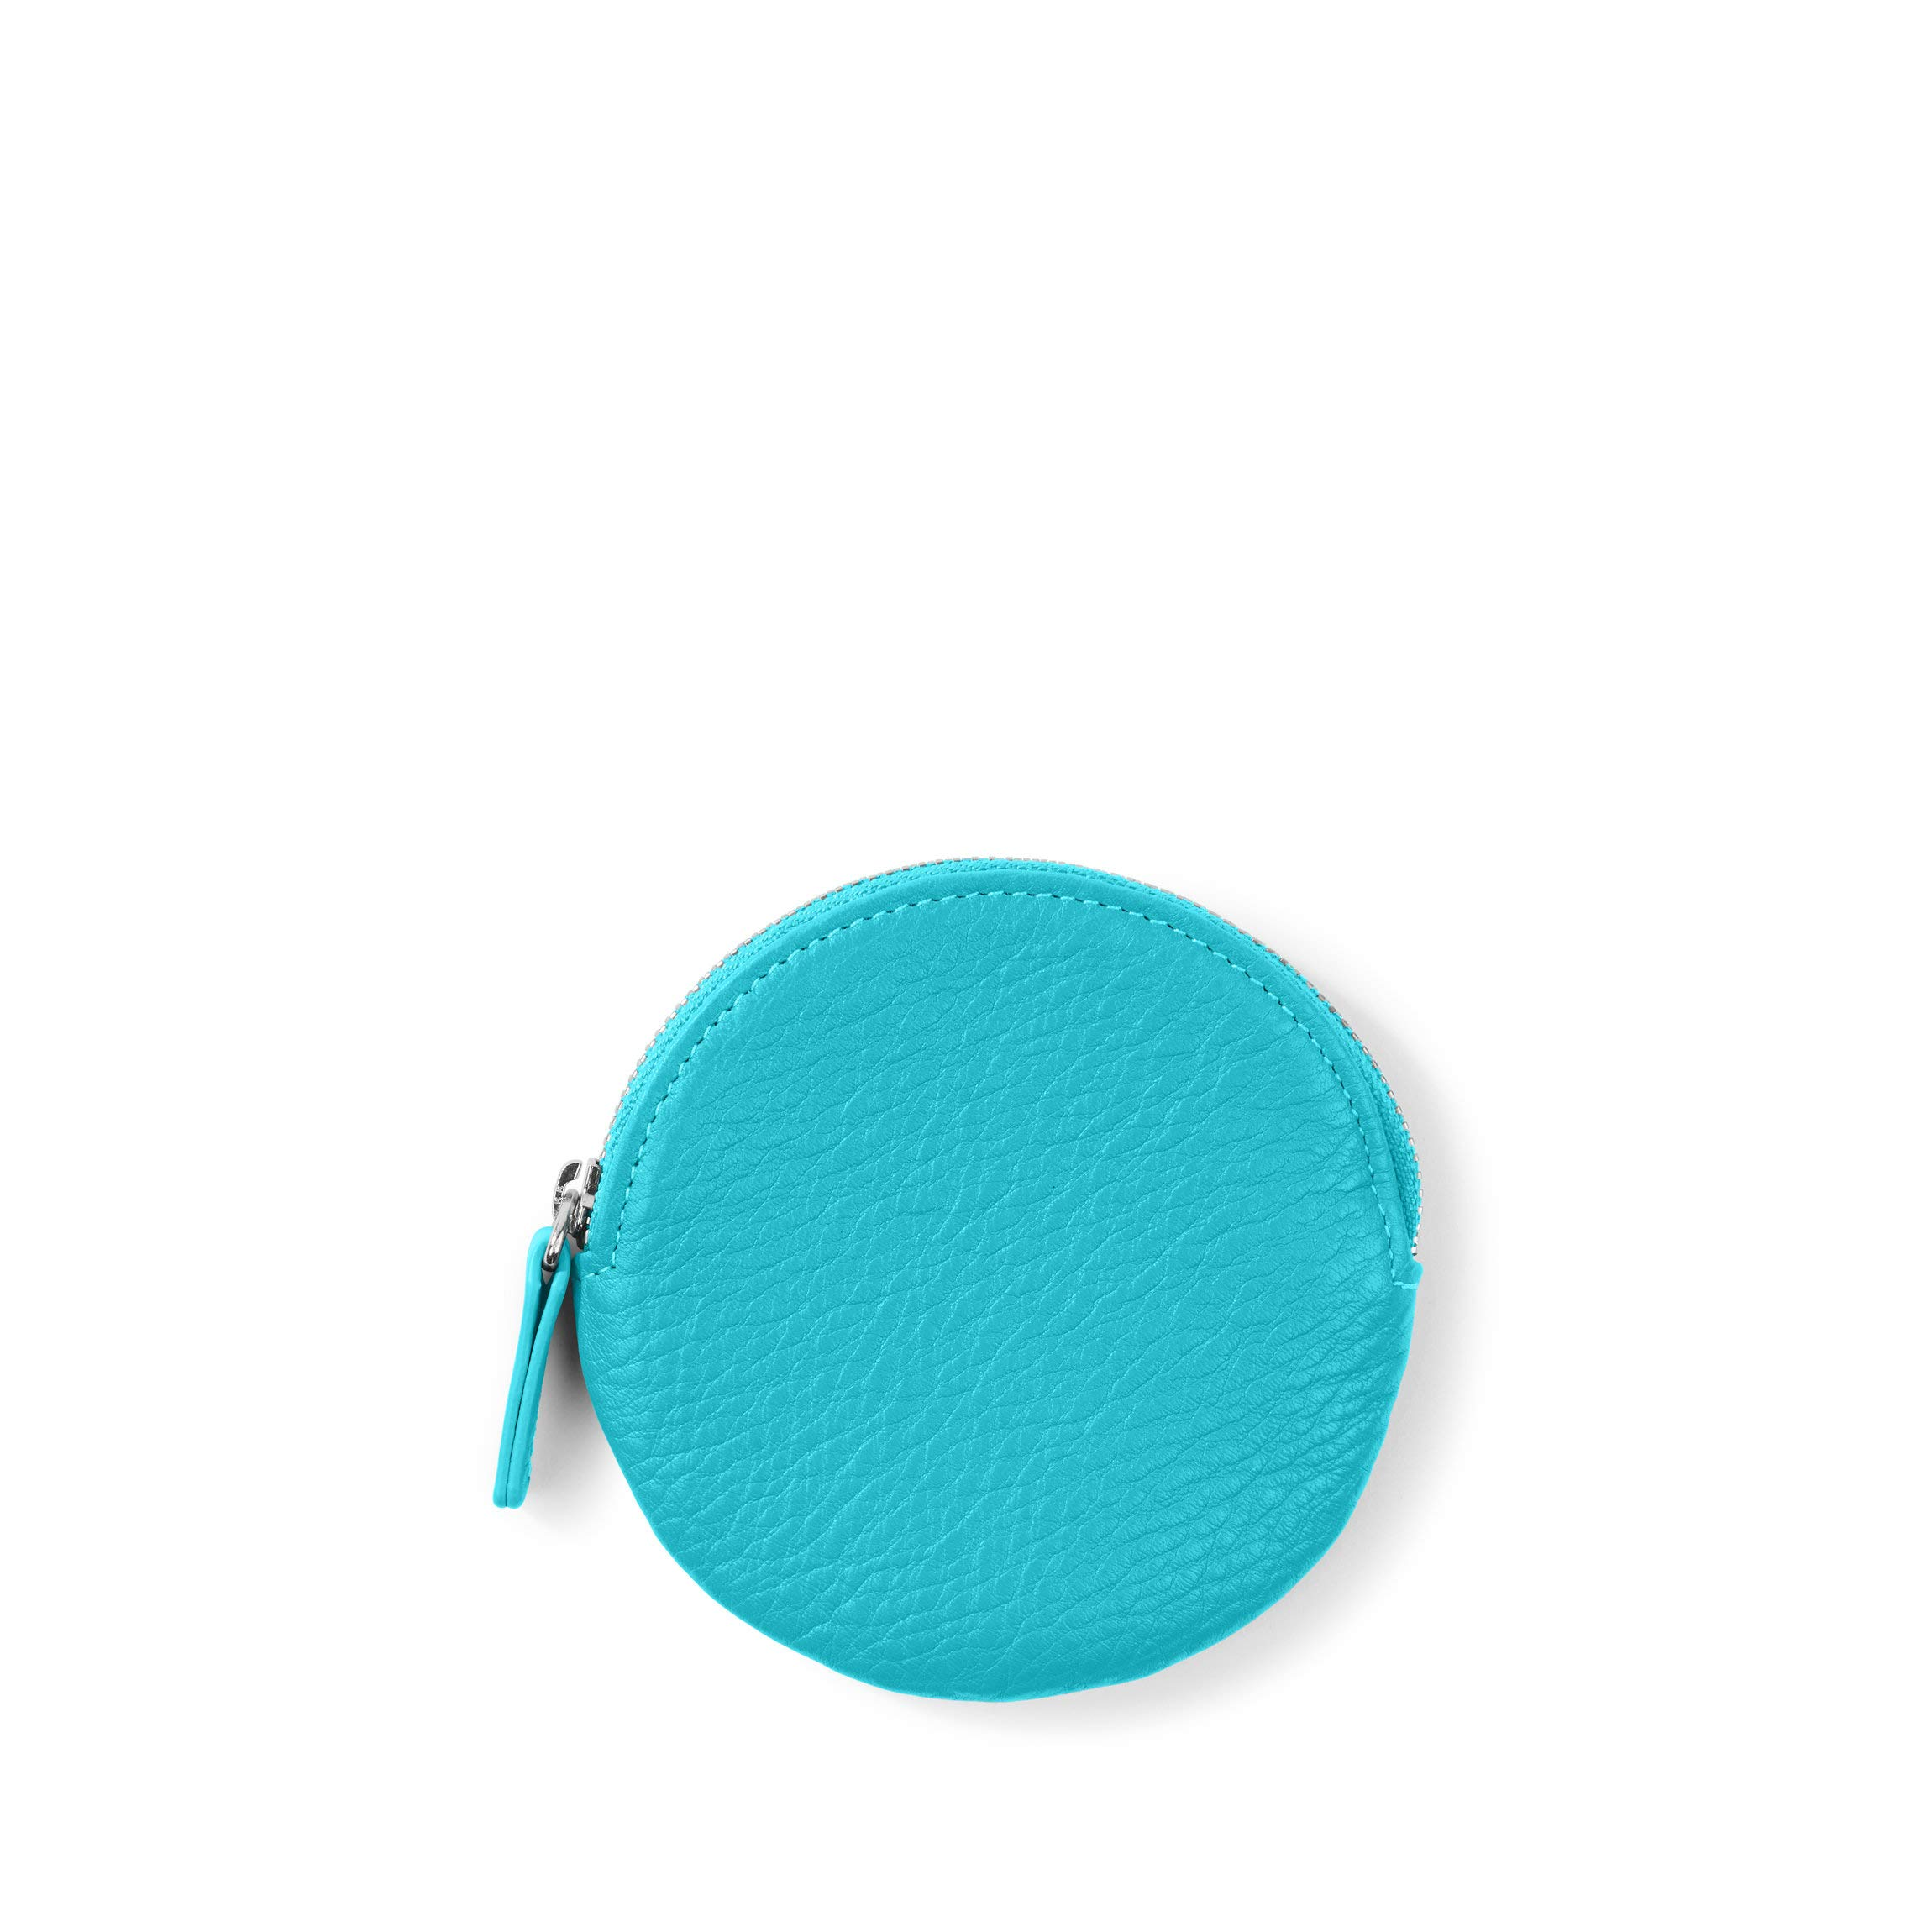 Leatherology Teal Round Coin Pouch by Leatherology